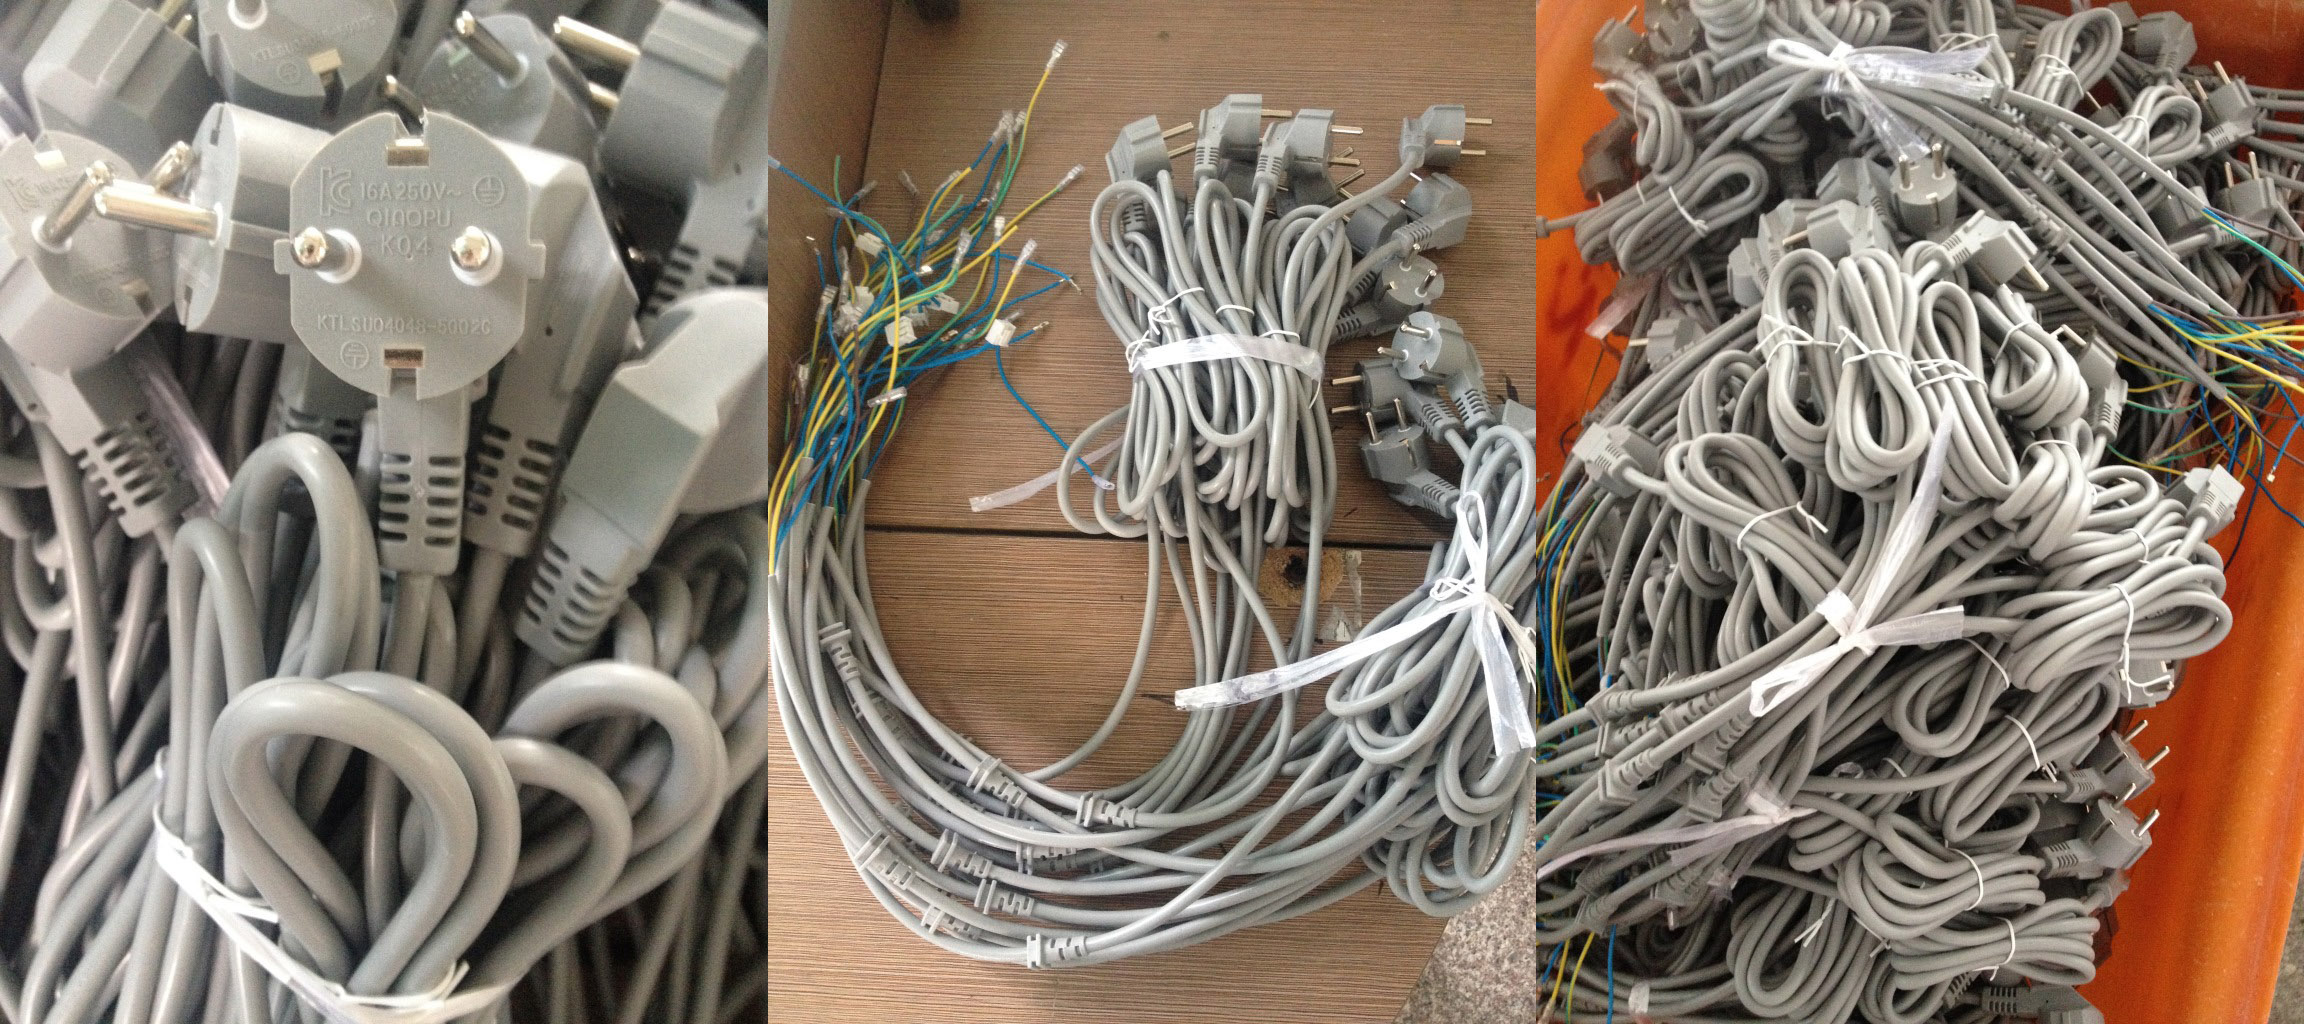 Wiring Power Plug C13 Connector C15 Computer Socket Iec Ac Korea Cord 3 Wire 16 Amp Cee 7 4 Type F Plugksc8305 Standard Supply Without Hole